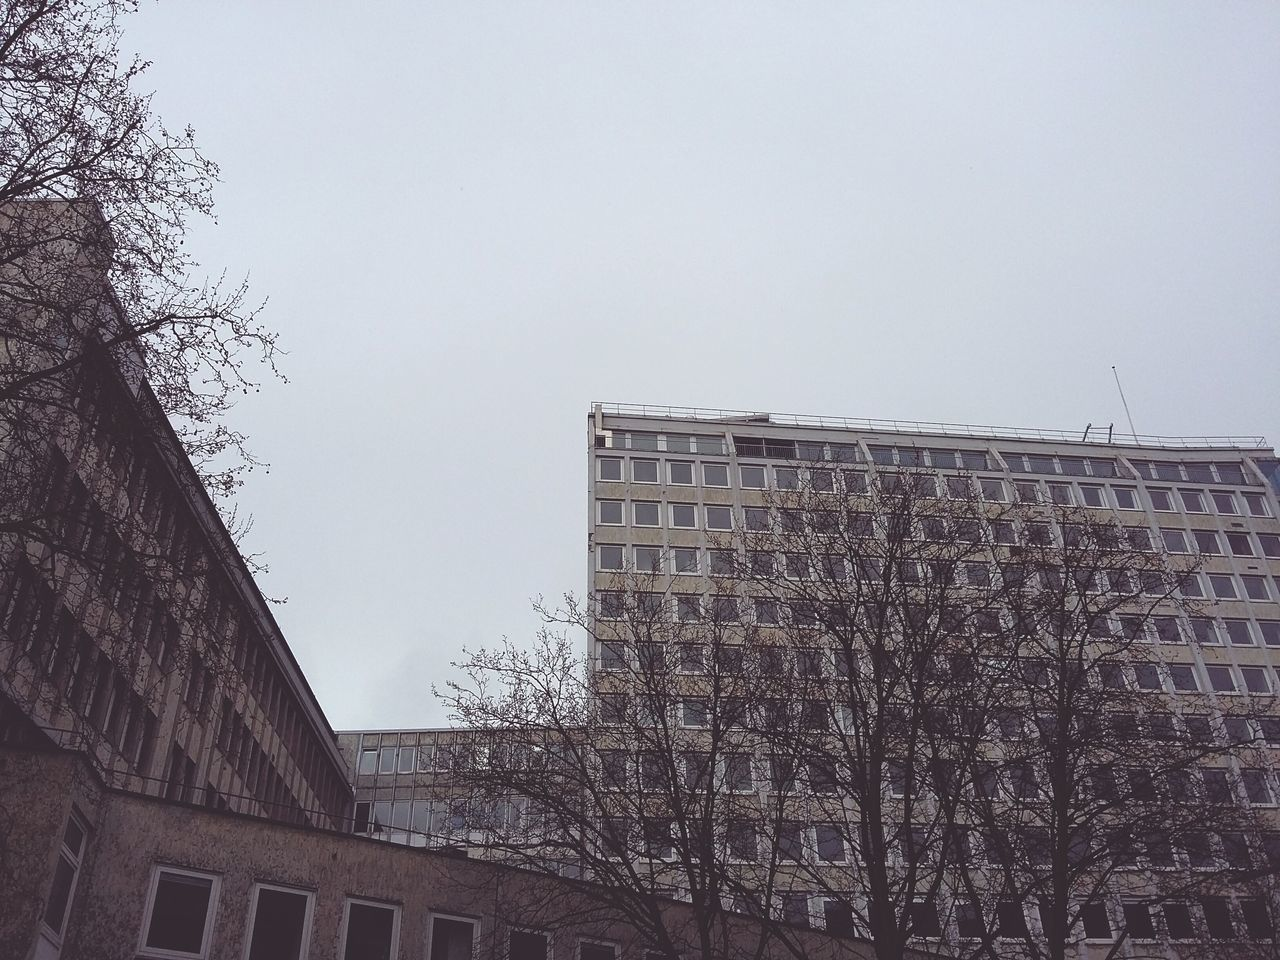 Winter Tristesse. · Hamburg germany 040 From the archives Architecture buildings corners Naked Trees tree crowns Gray Sky melancholy